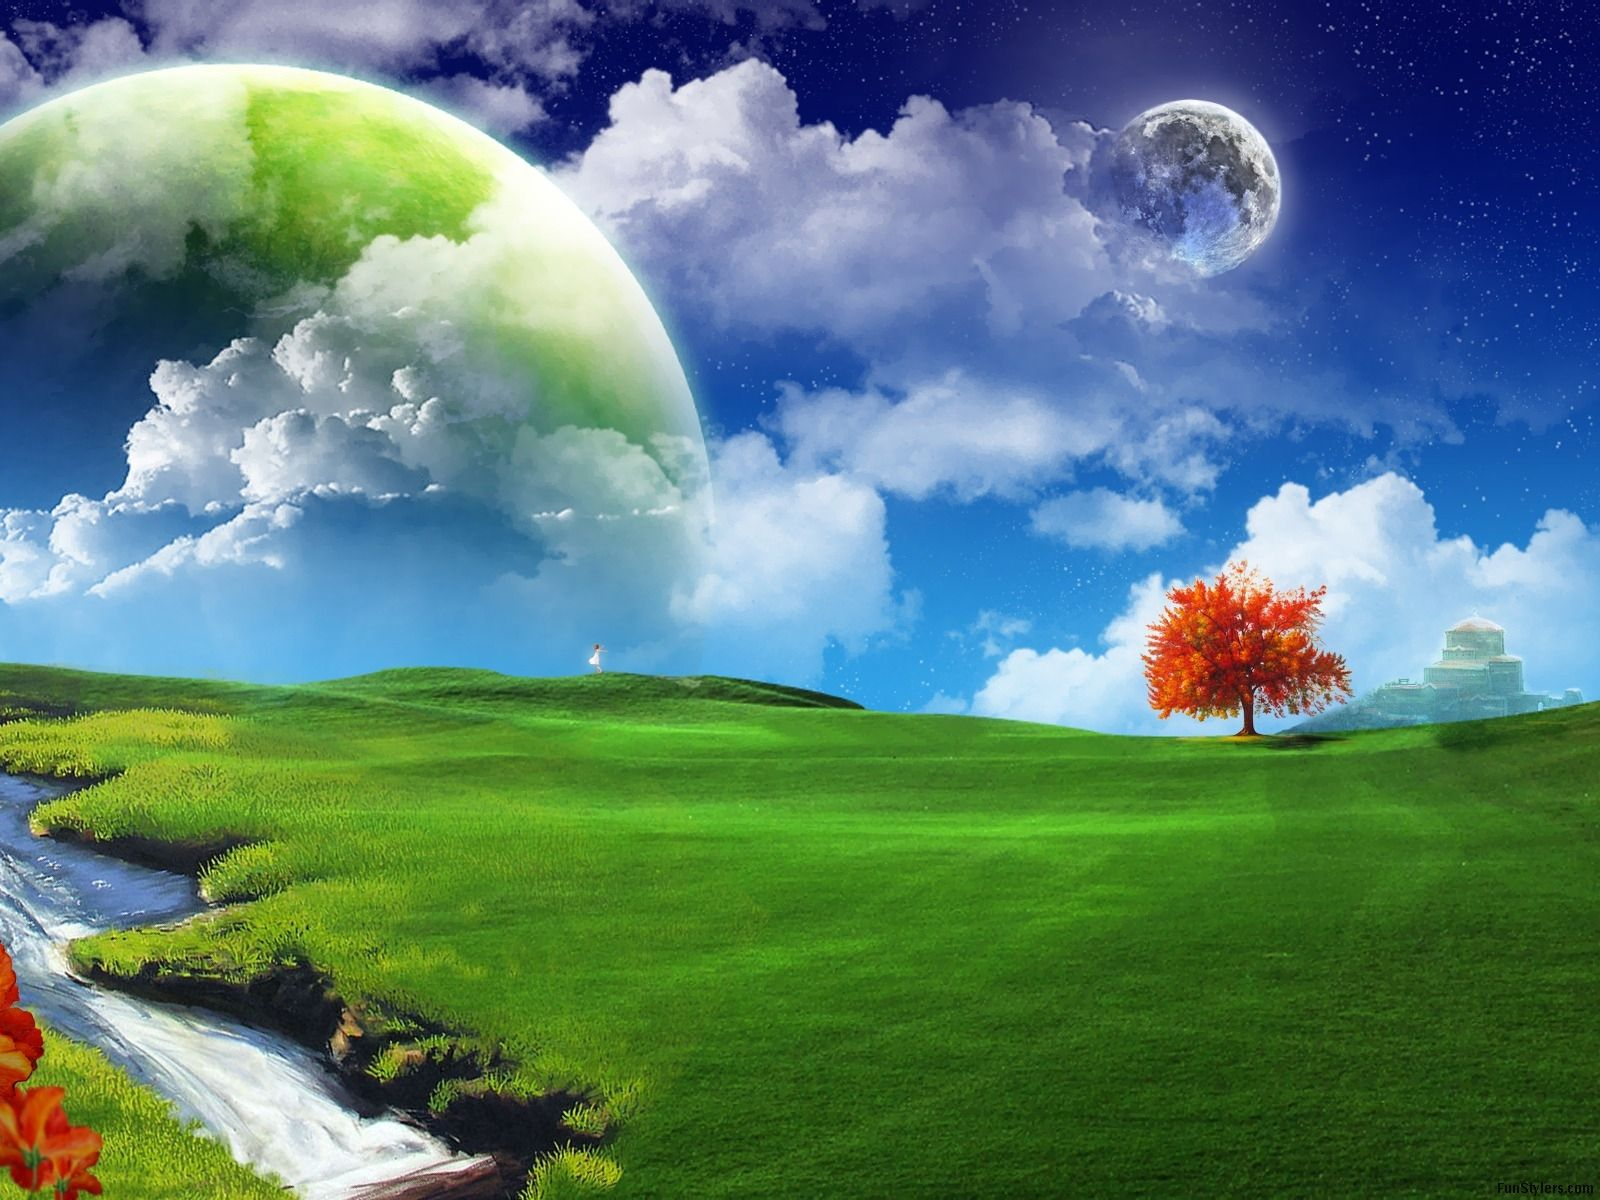 3d wallpaper | cool hd nature desktop wallpapers: 3d wallpaper